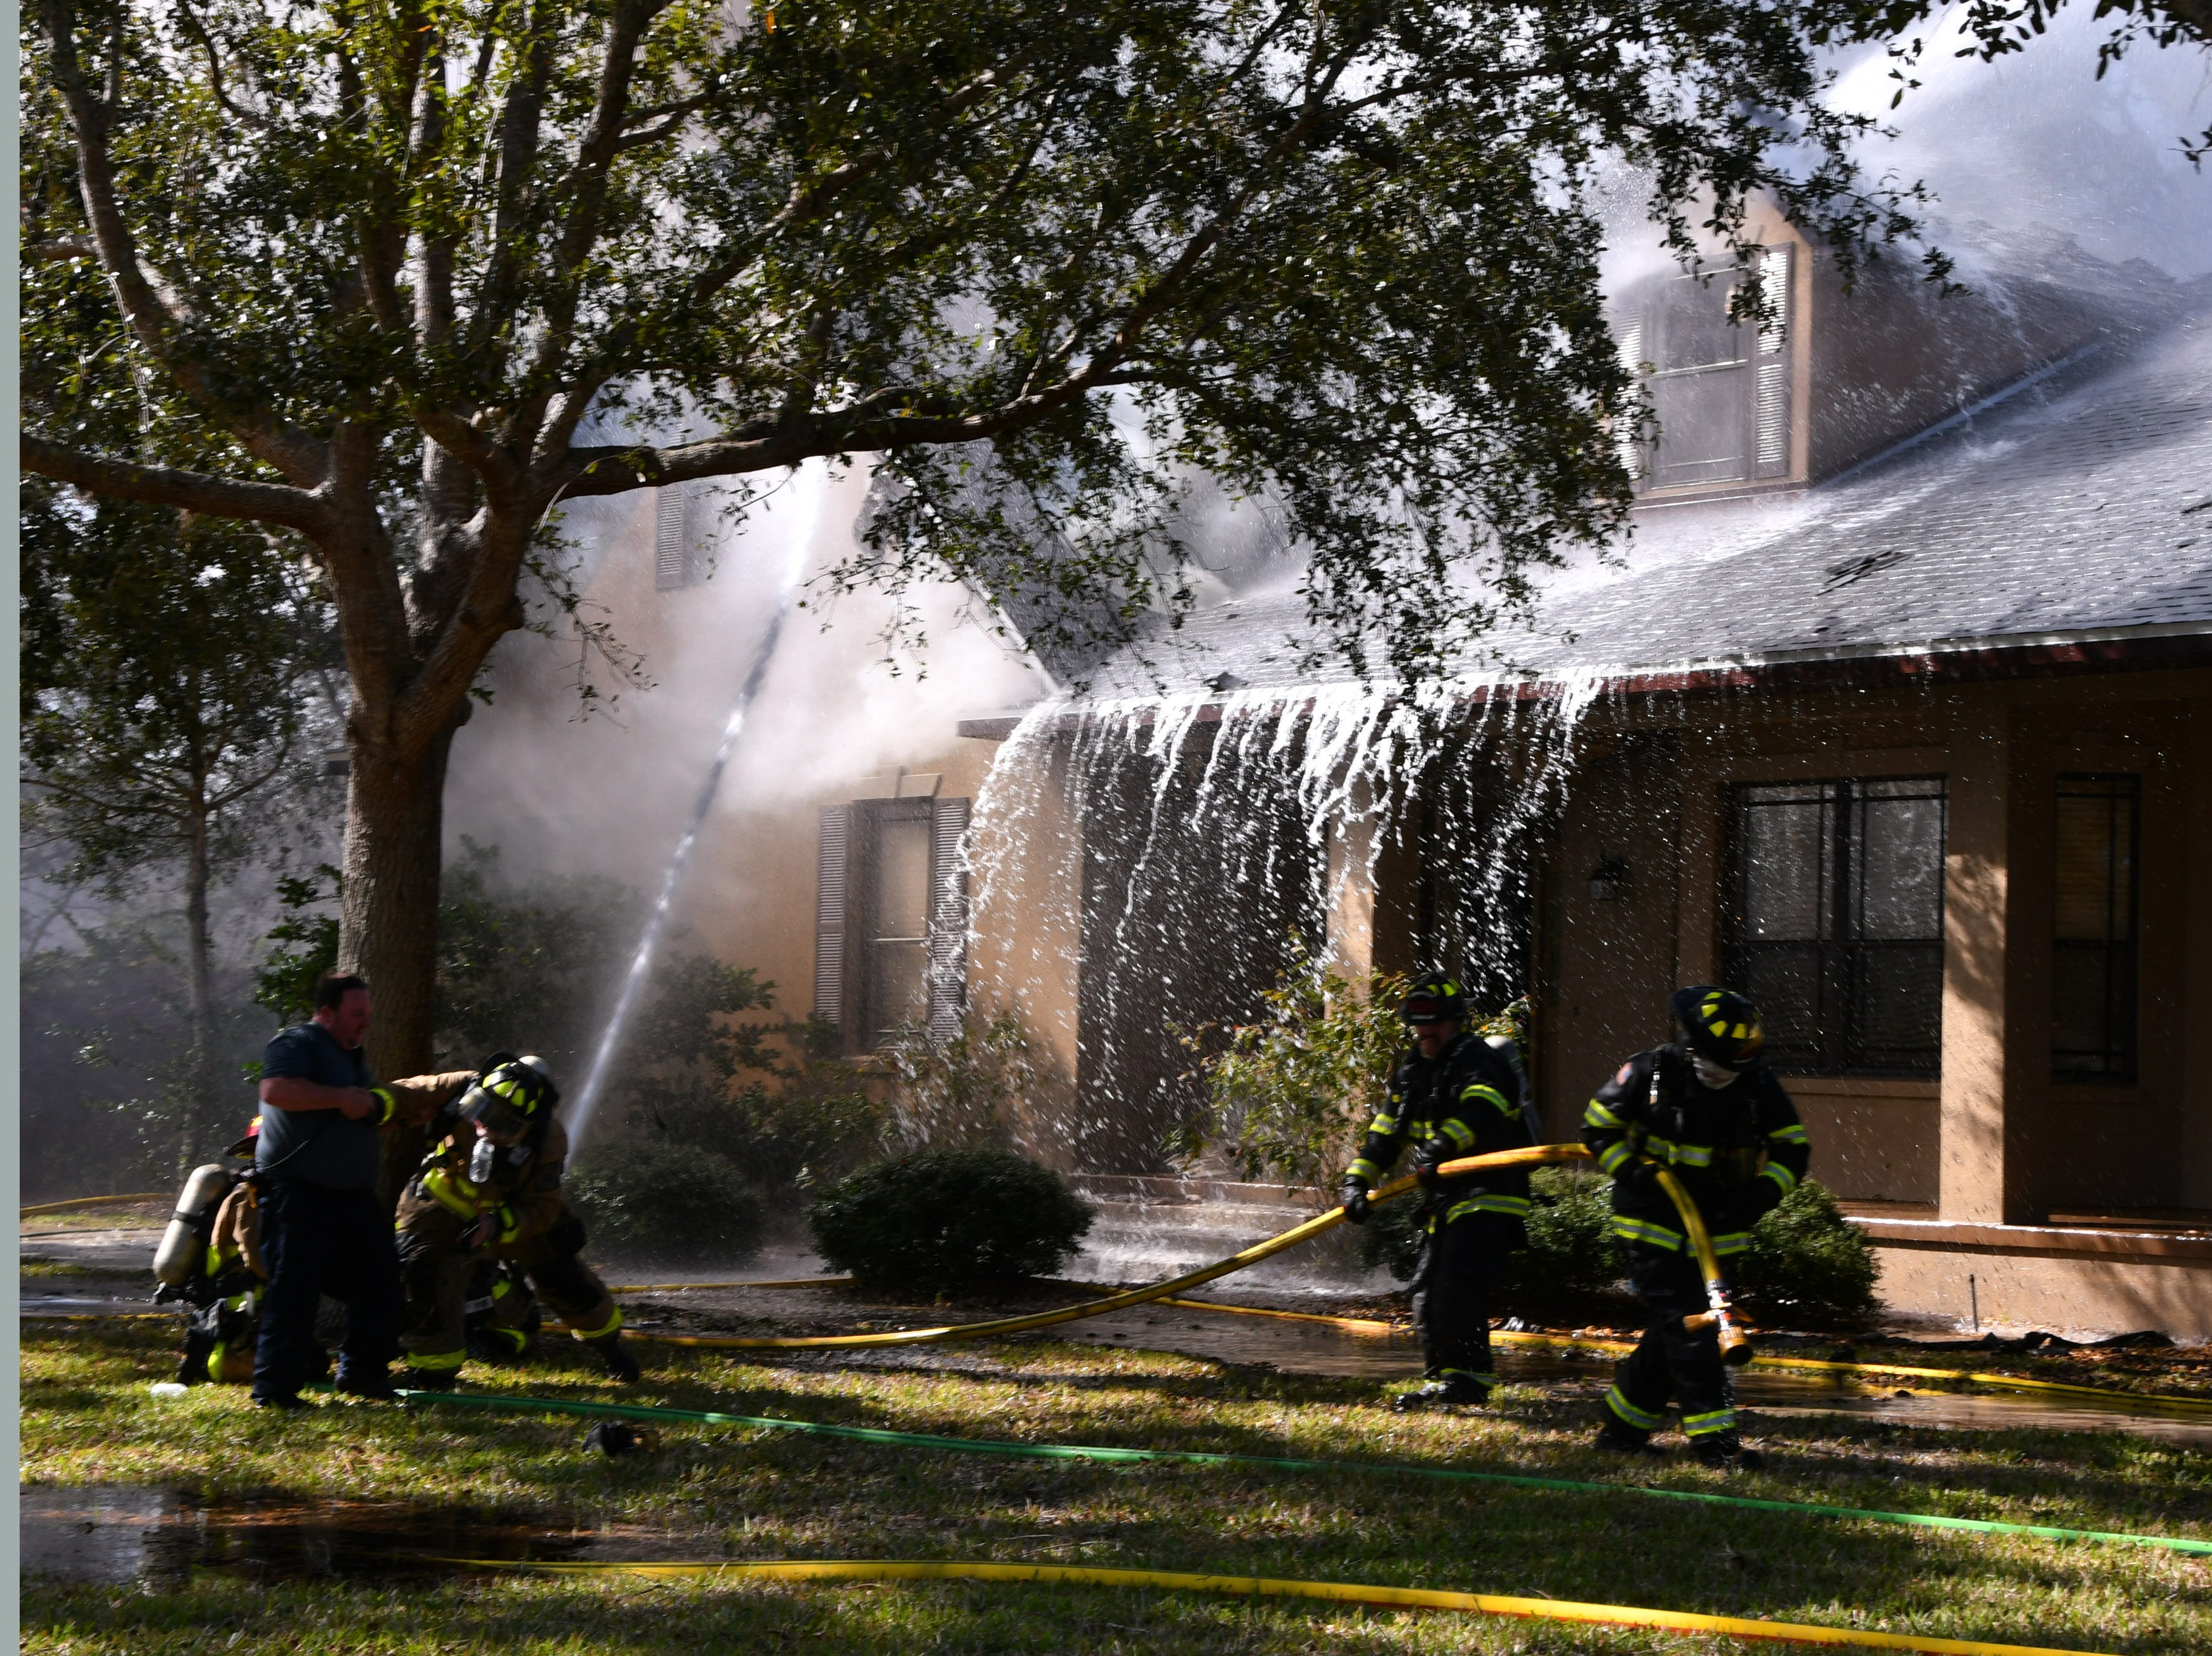 Brevard County and Melbourne firefighters responded to a full engulfed house fire on Ligustrum Drive in Windover Farms in Melbourne.